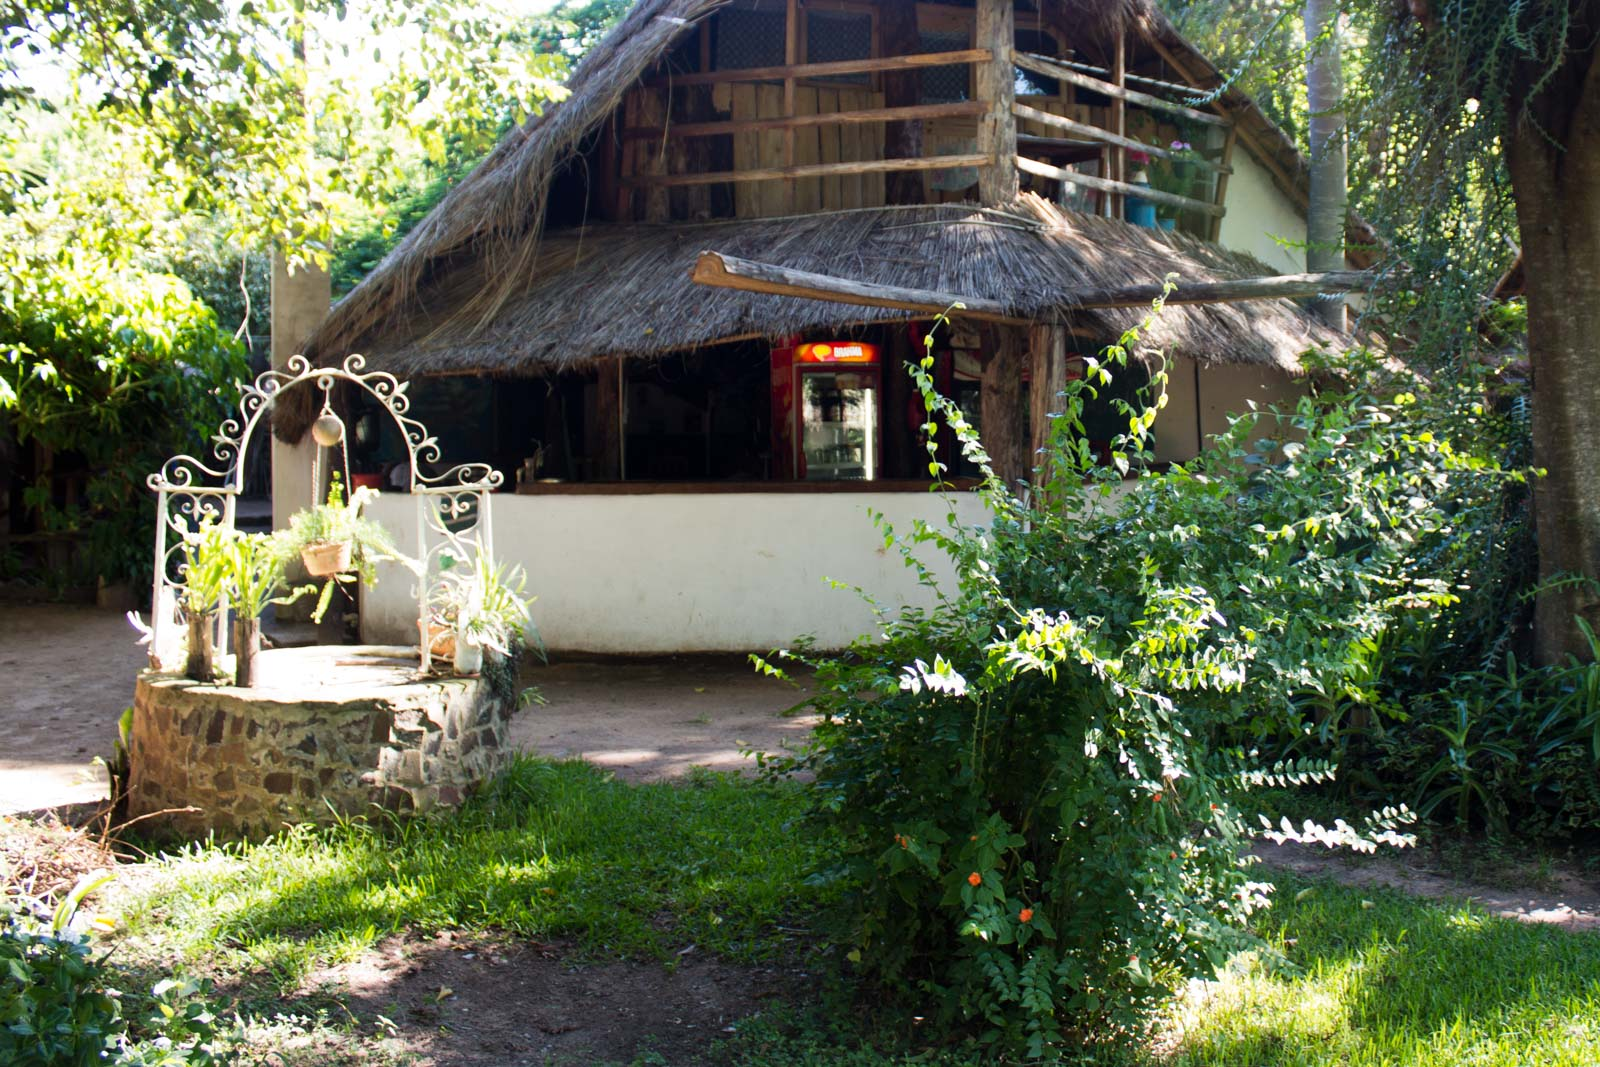 granja el roble concepcion, paraguay, places to stay in concepcion, ecotourism in paraguay